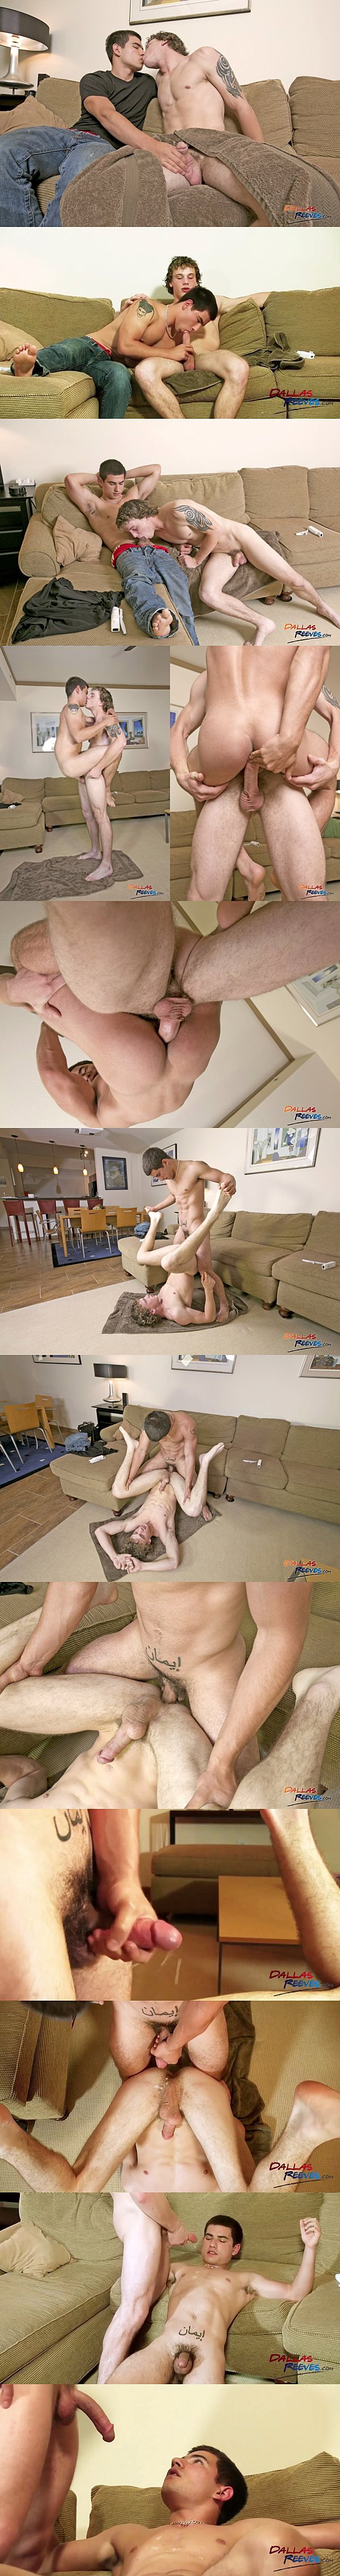 Hot straight jocks Donny Forza and Vadim Black take turns barebacking each other's tight ass at Dallasreeves 02